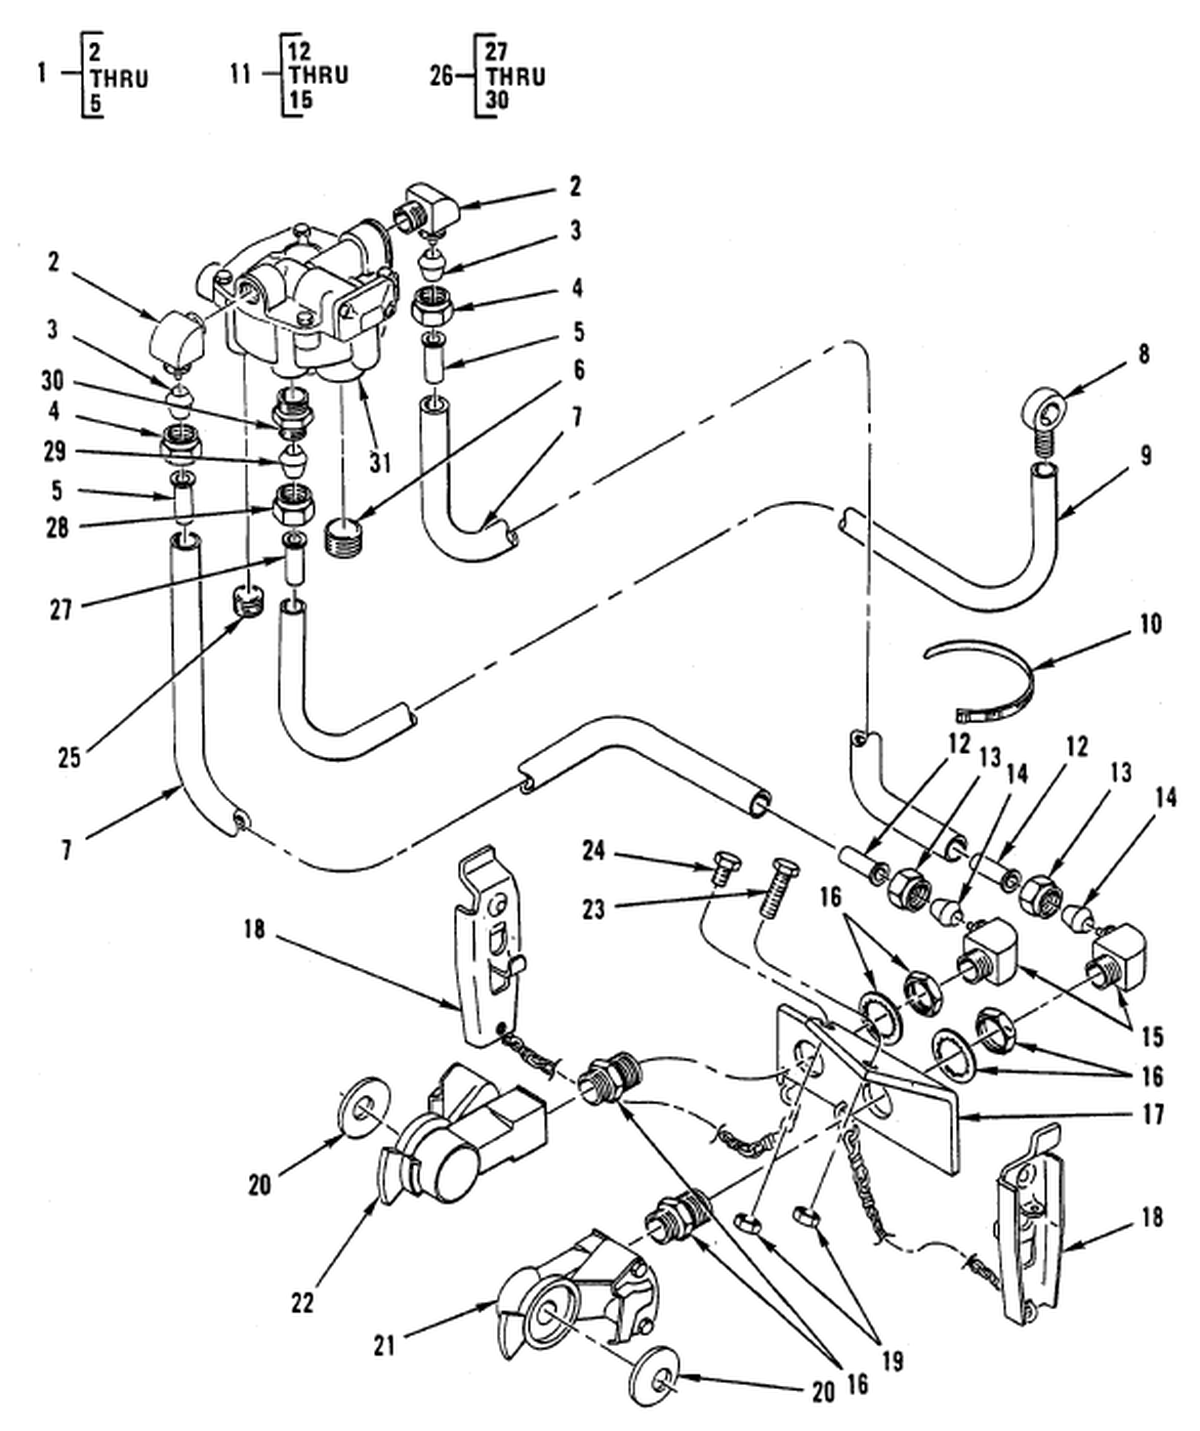 0166 00-2 figure 165  trailer brake connections and controls